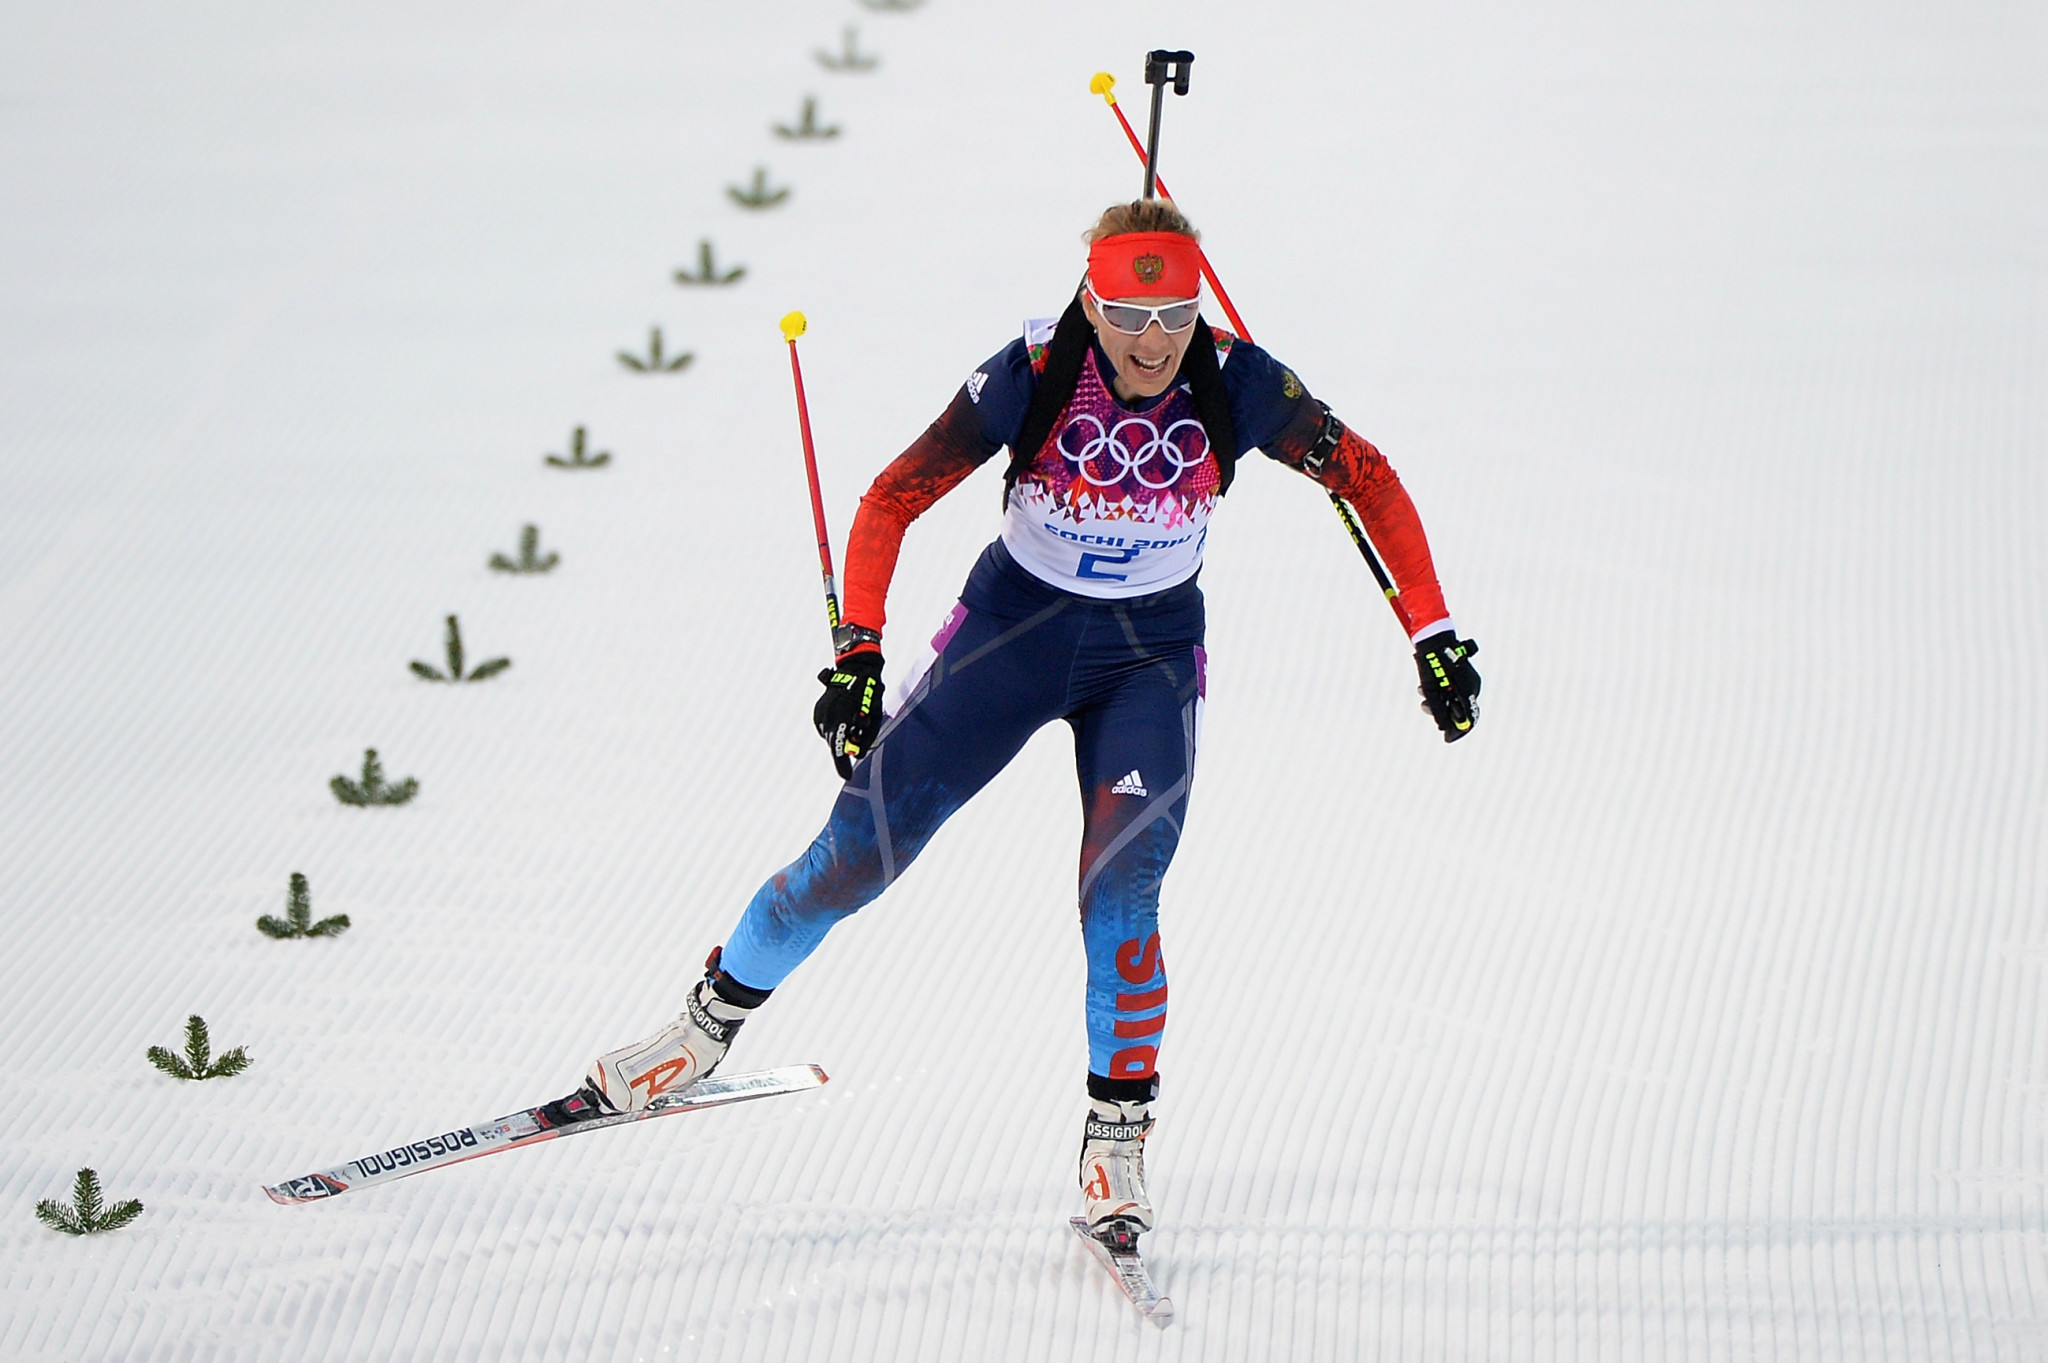 Olga Zaitseva has been nominated to sit on the Russian Biathlon Union Board ©Getty Images